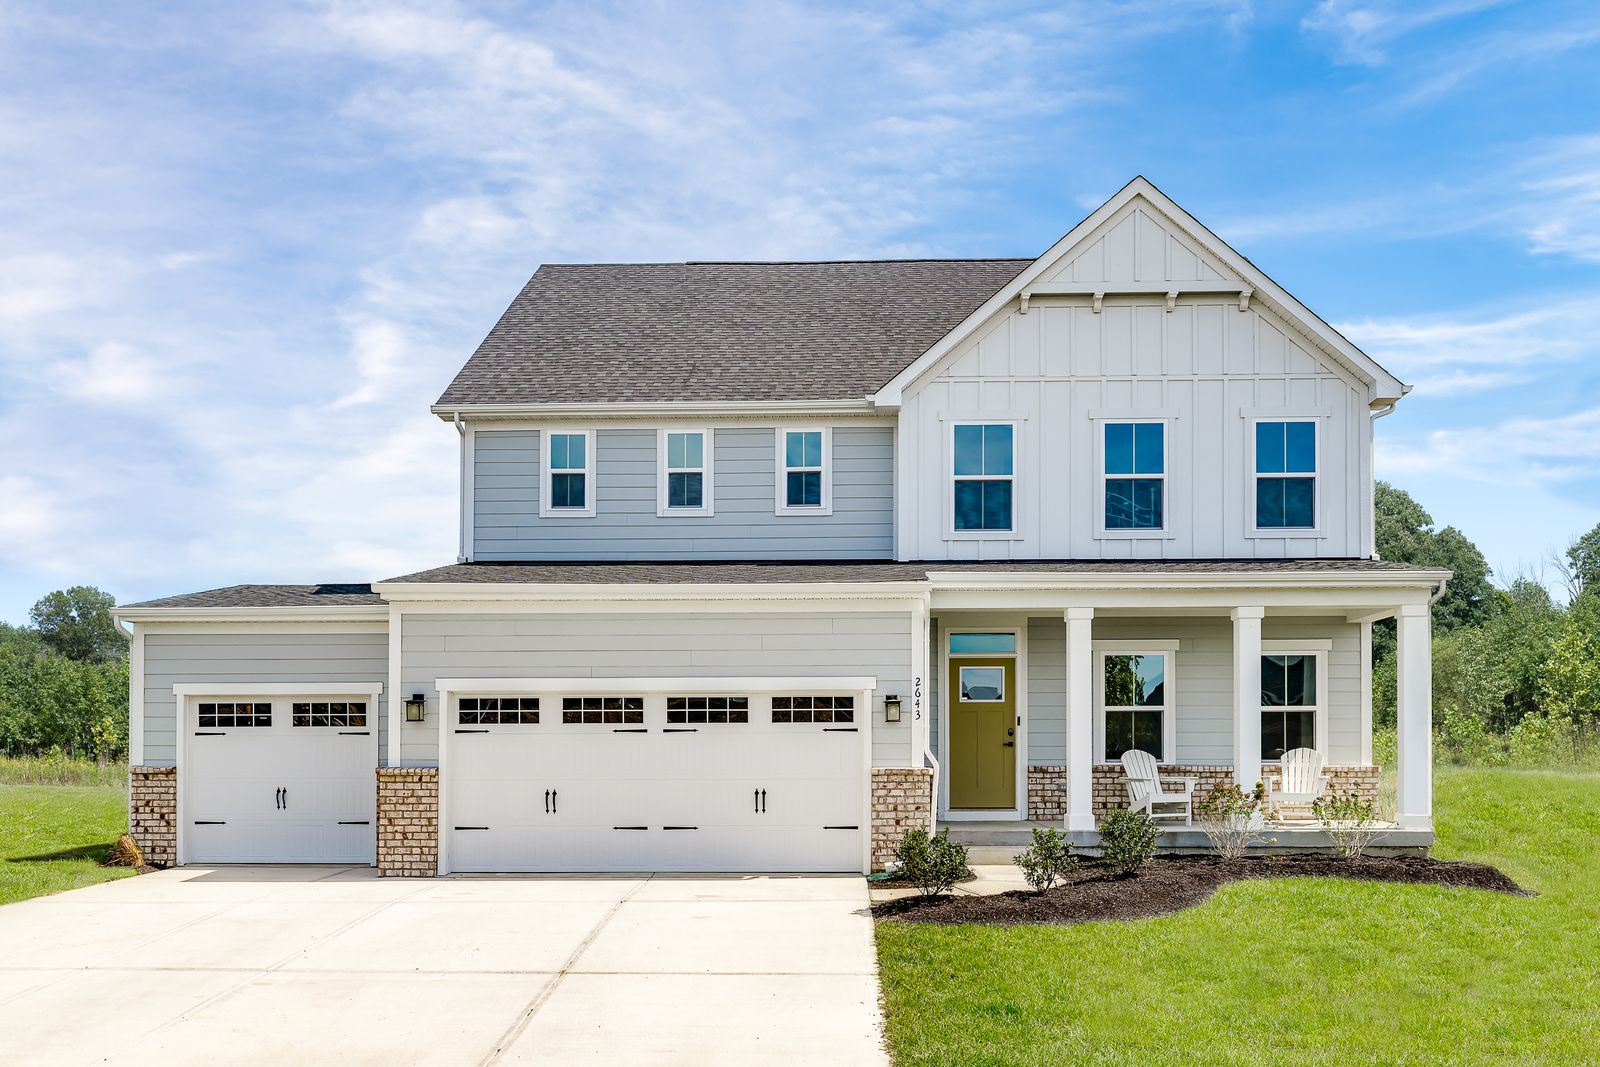 Noelting Estates: 1/2 Acre Homesites:Click here to schedule your visitto choose your homesite in our new section. Featuring wooded and tree-lined homesites with up to a ½ acre+ plus optional 3-car garages & basements!